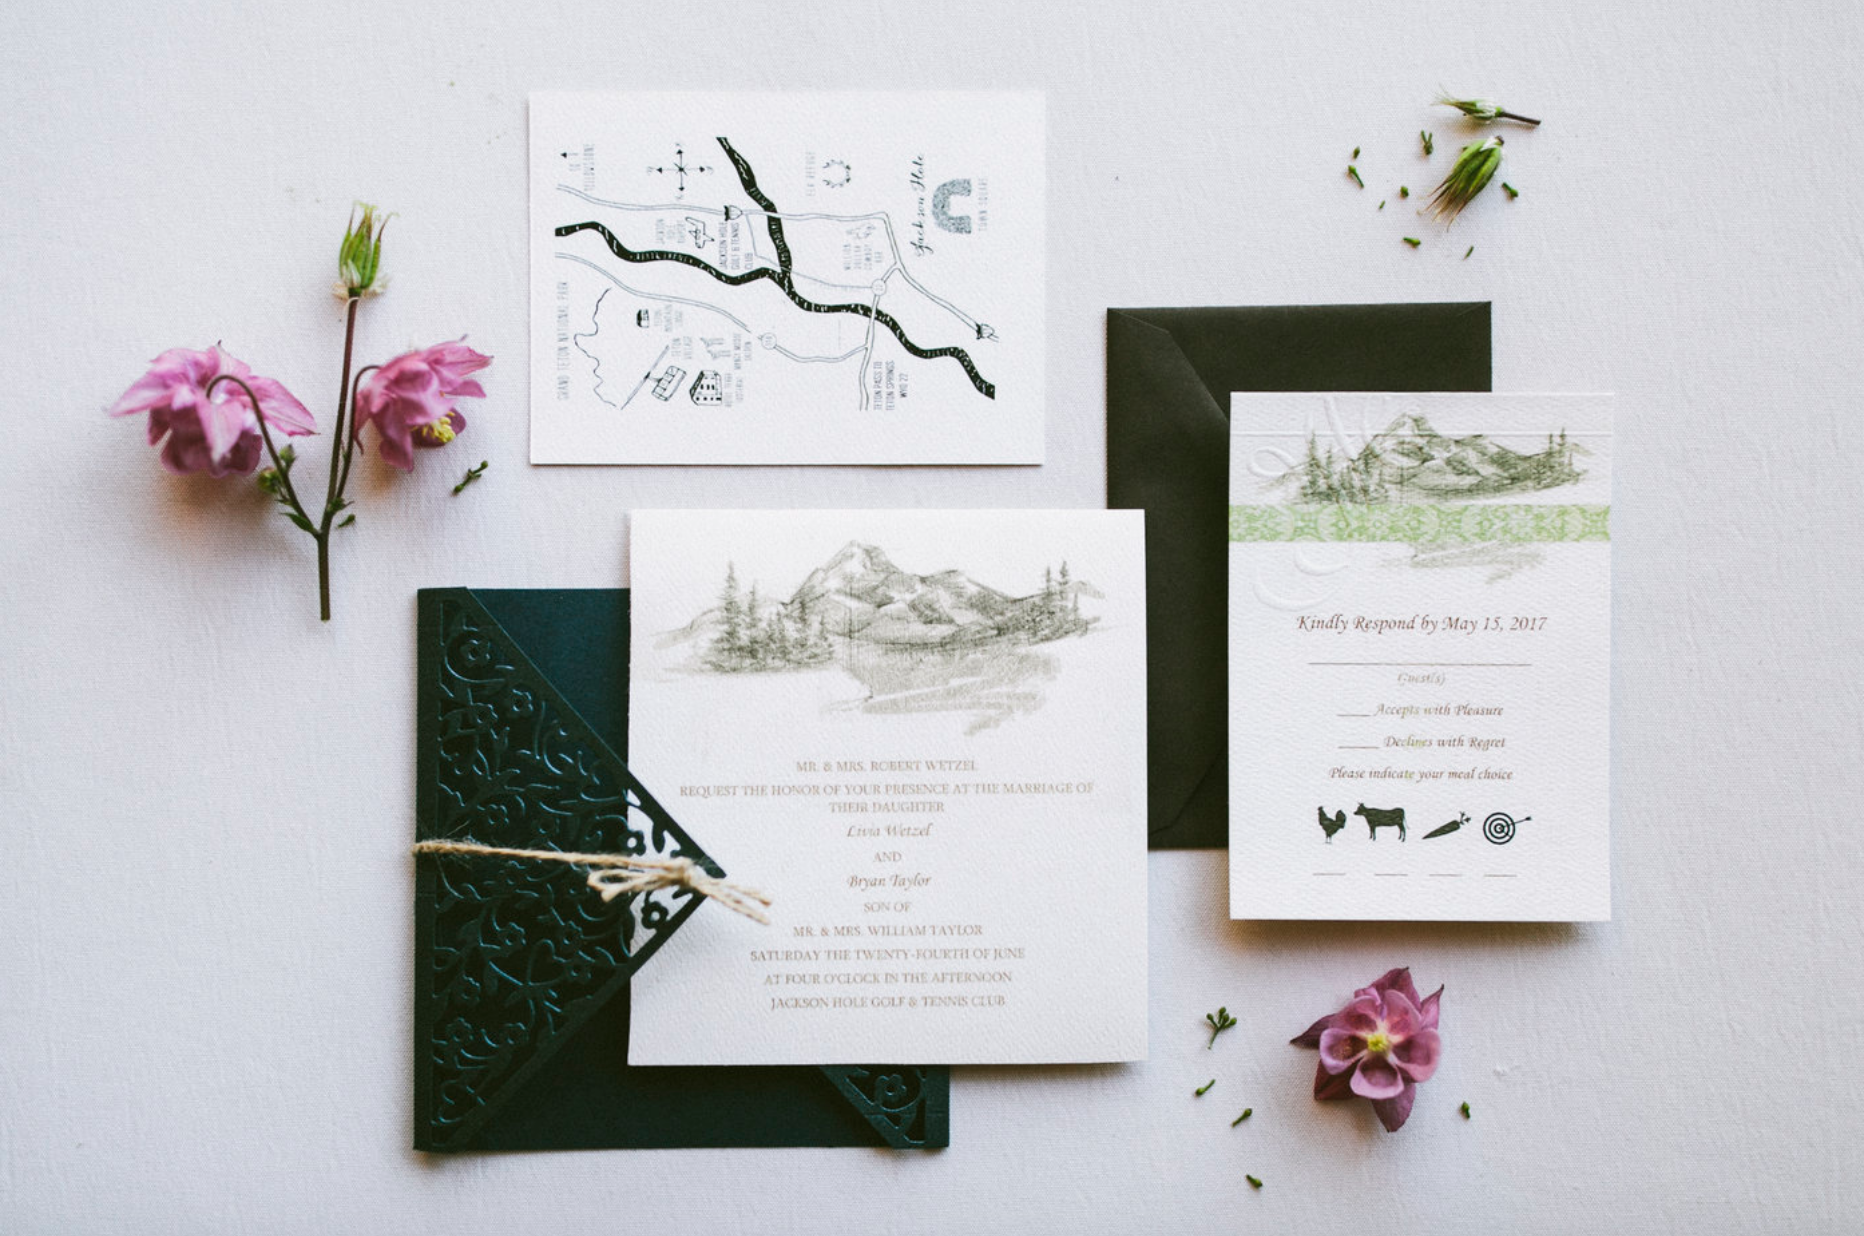 How to win at stationery etiquette! | A-One Weddings & Events ...